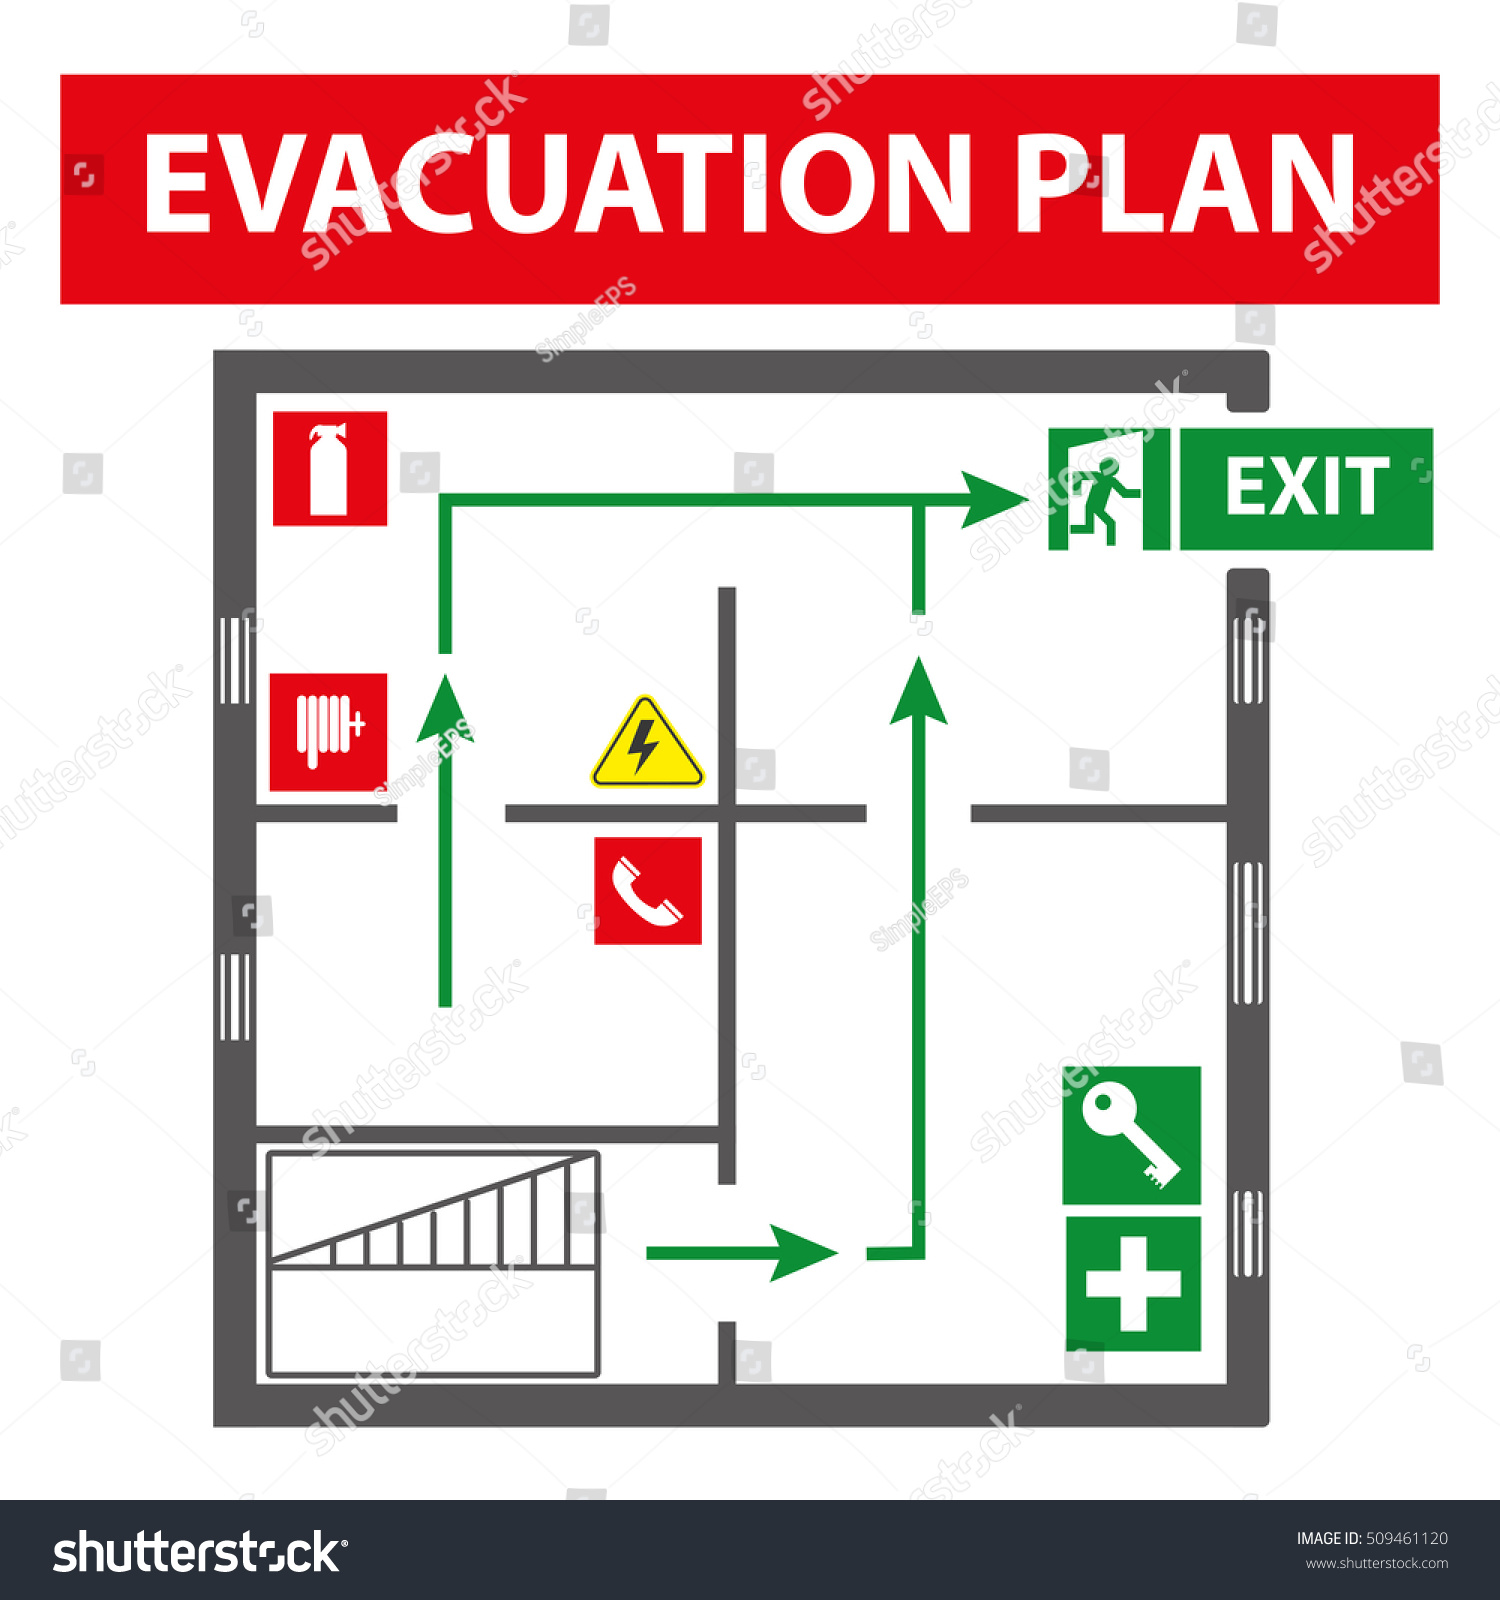 Signs evacuation plan building case fire stock vector 509461120 signs for the evacuation plan of the building in case of fire or a hazardous incident biocorpaavc Gallery